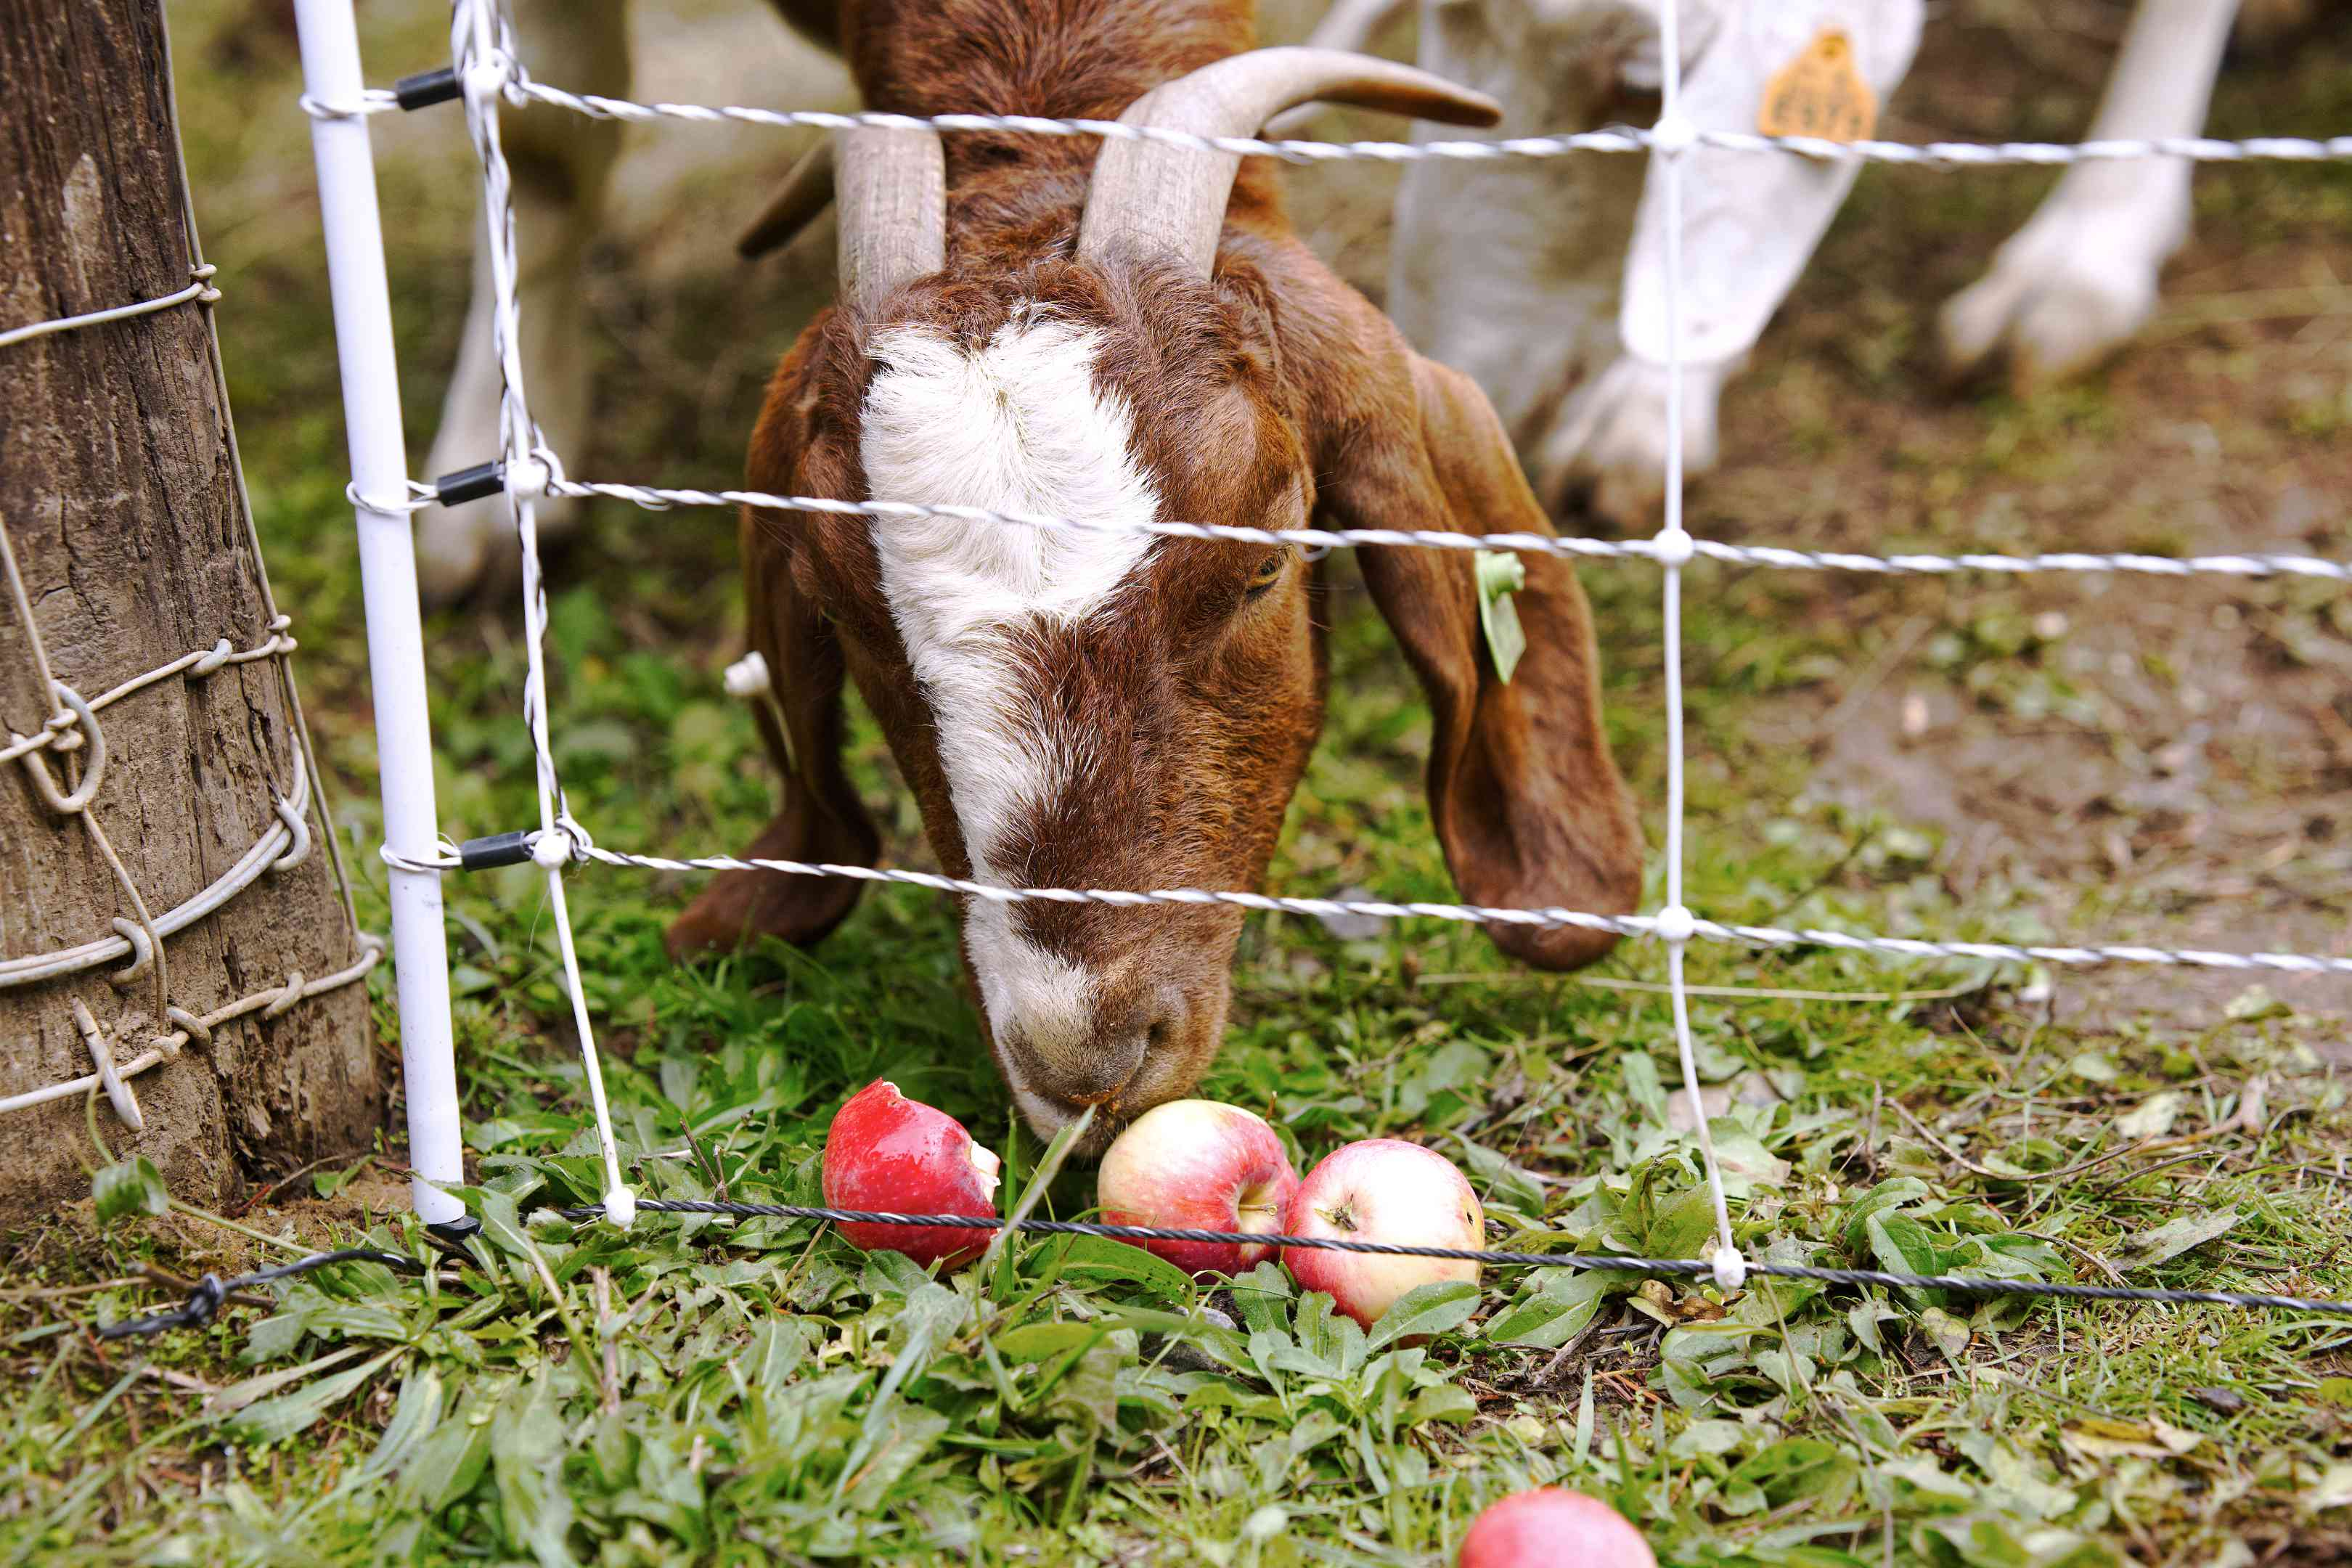 brown goat with horns eats loose pink apples on ground near wire fence